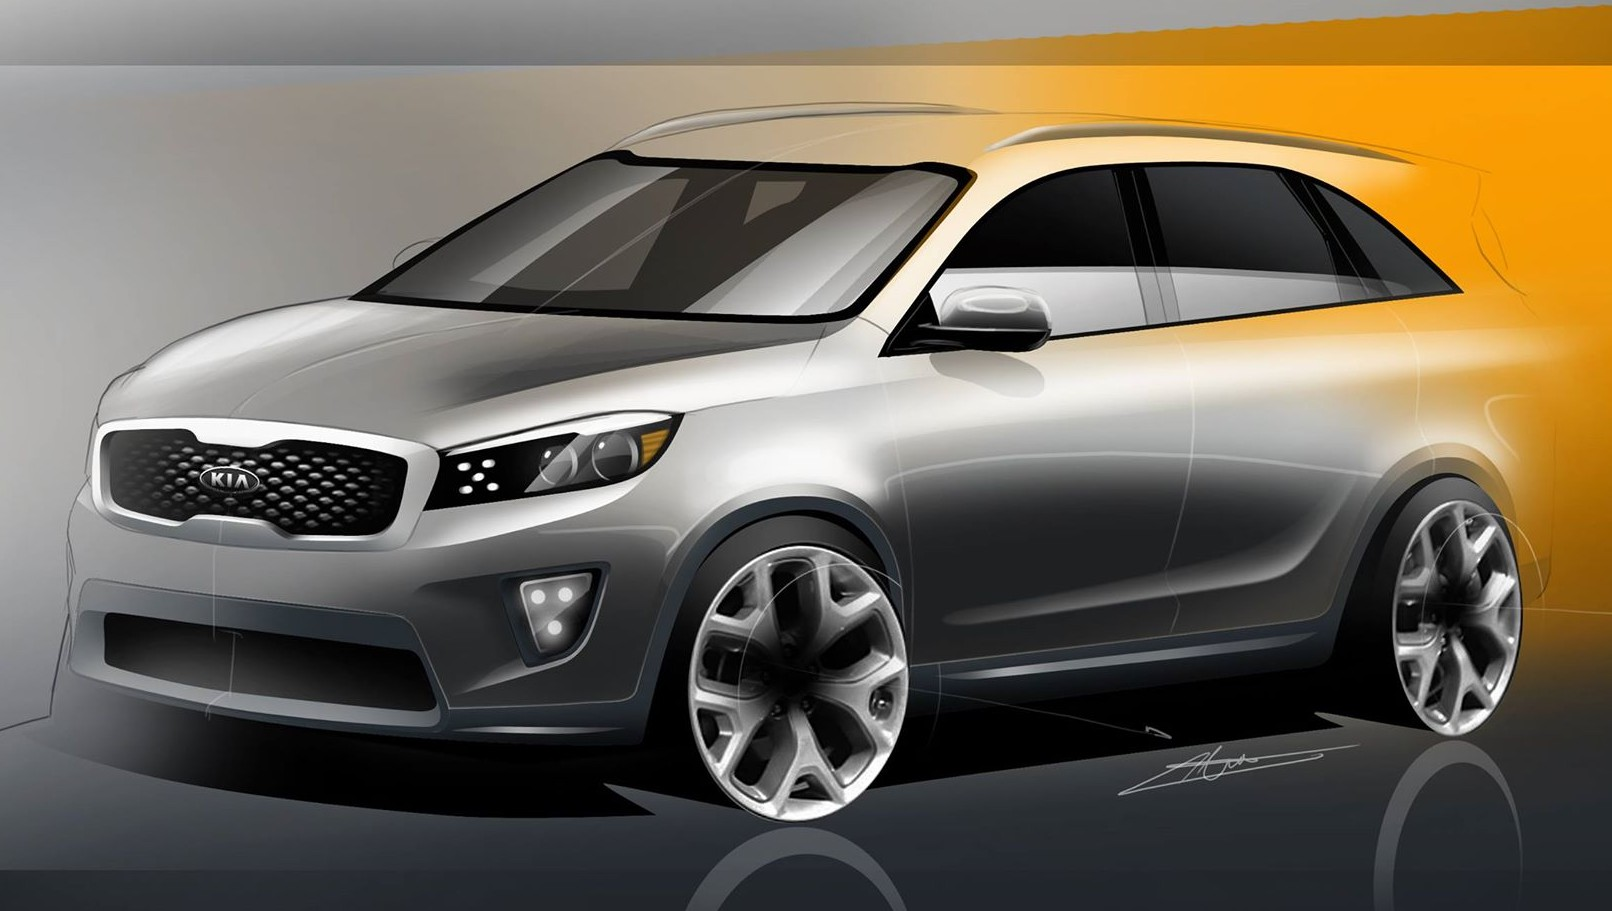 2015 Kia Sorento artist's renderings – an accurate preview ...